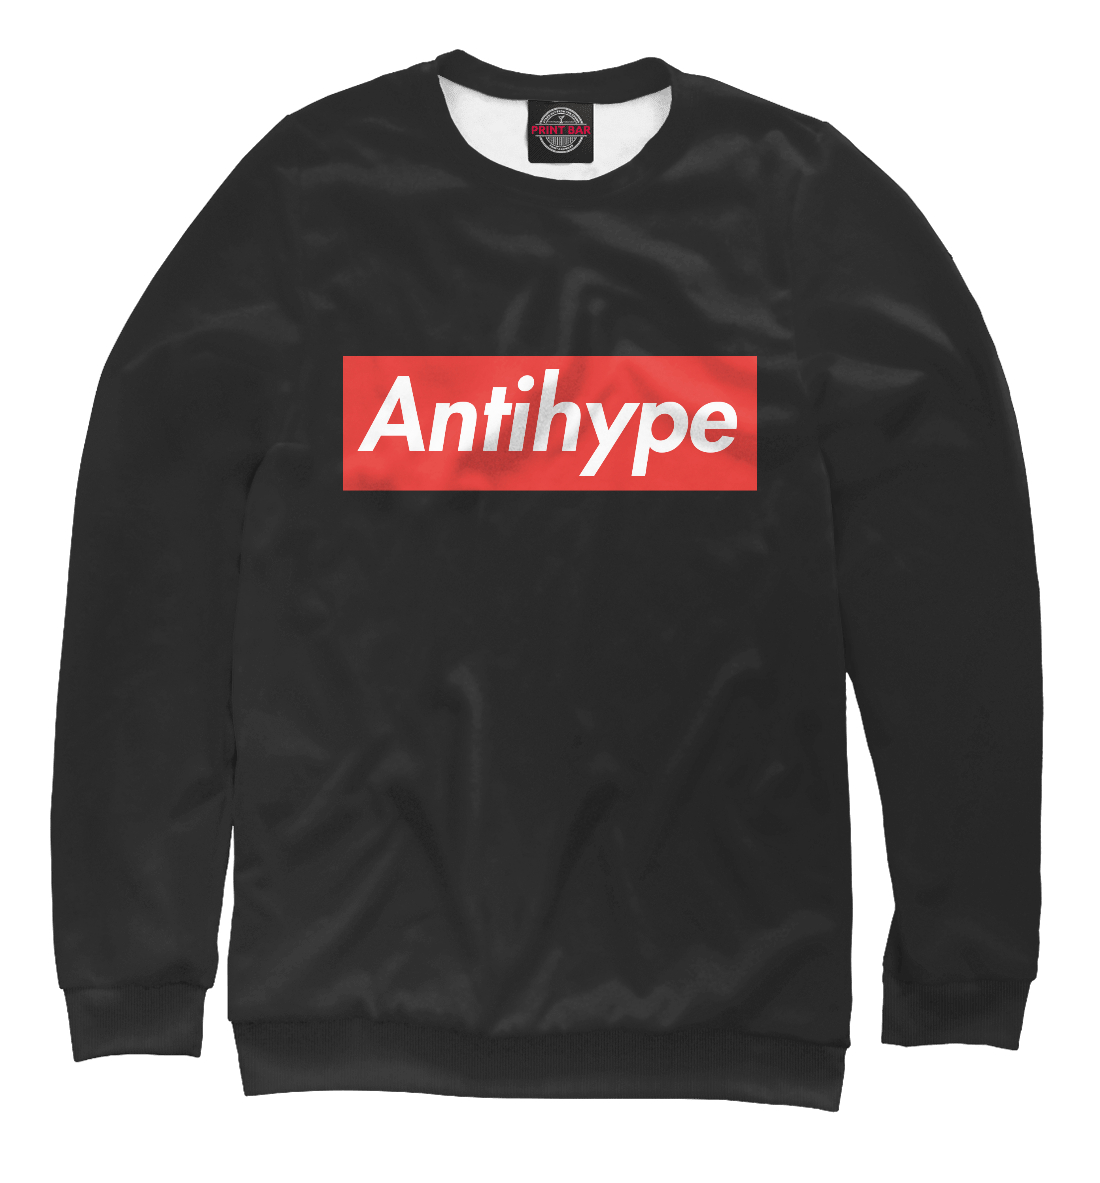 Купить Antihype, Printbar, Свитшоты, APD-244476-swi-1